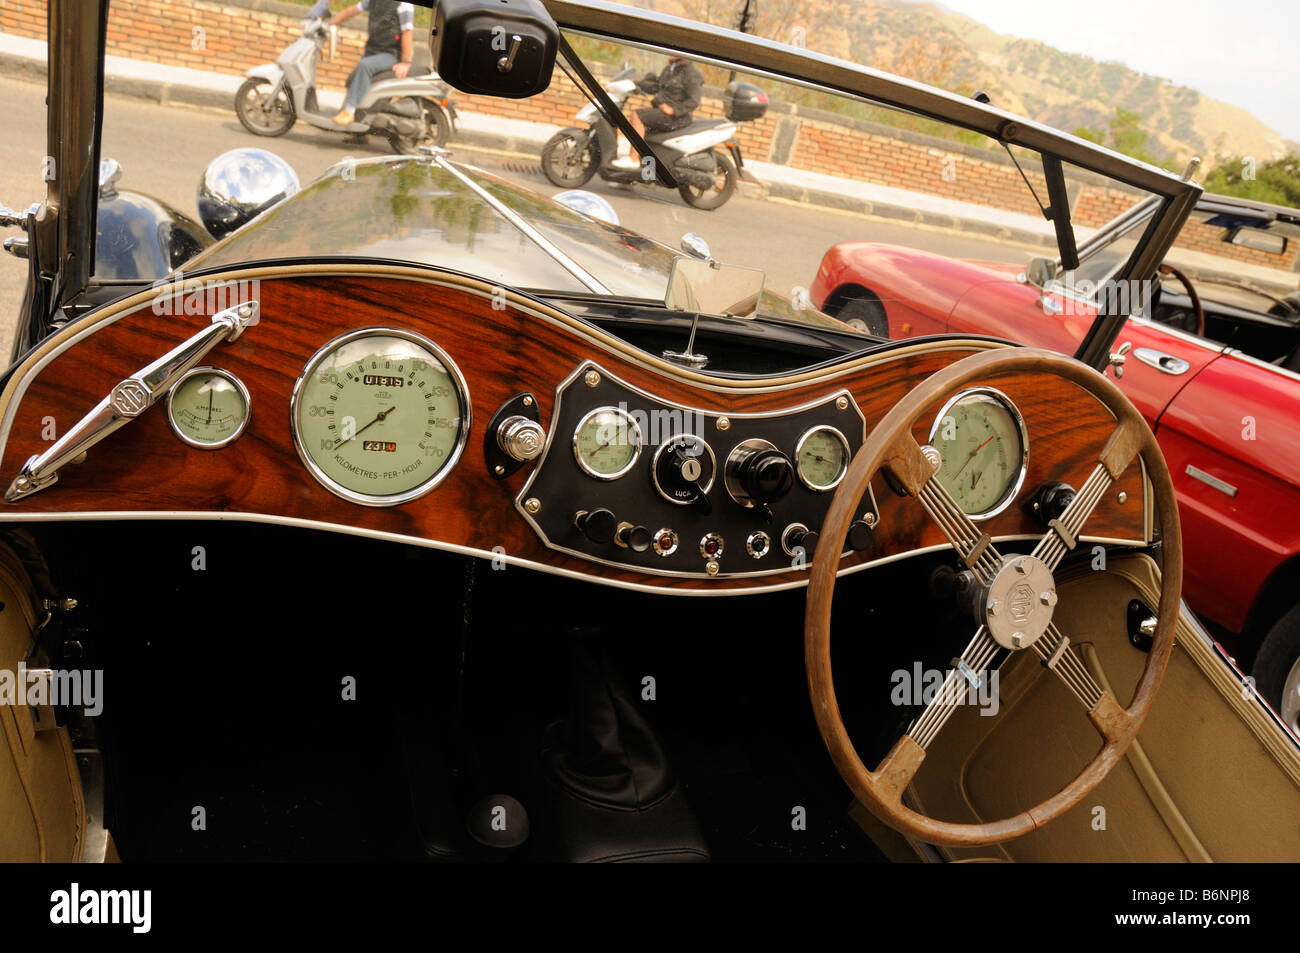 This is a detail from an MG Sports Car, a vintage car in Savoca ...